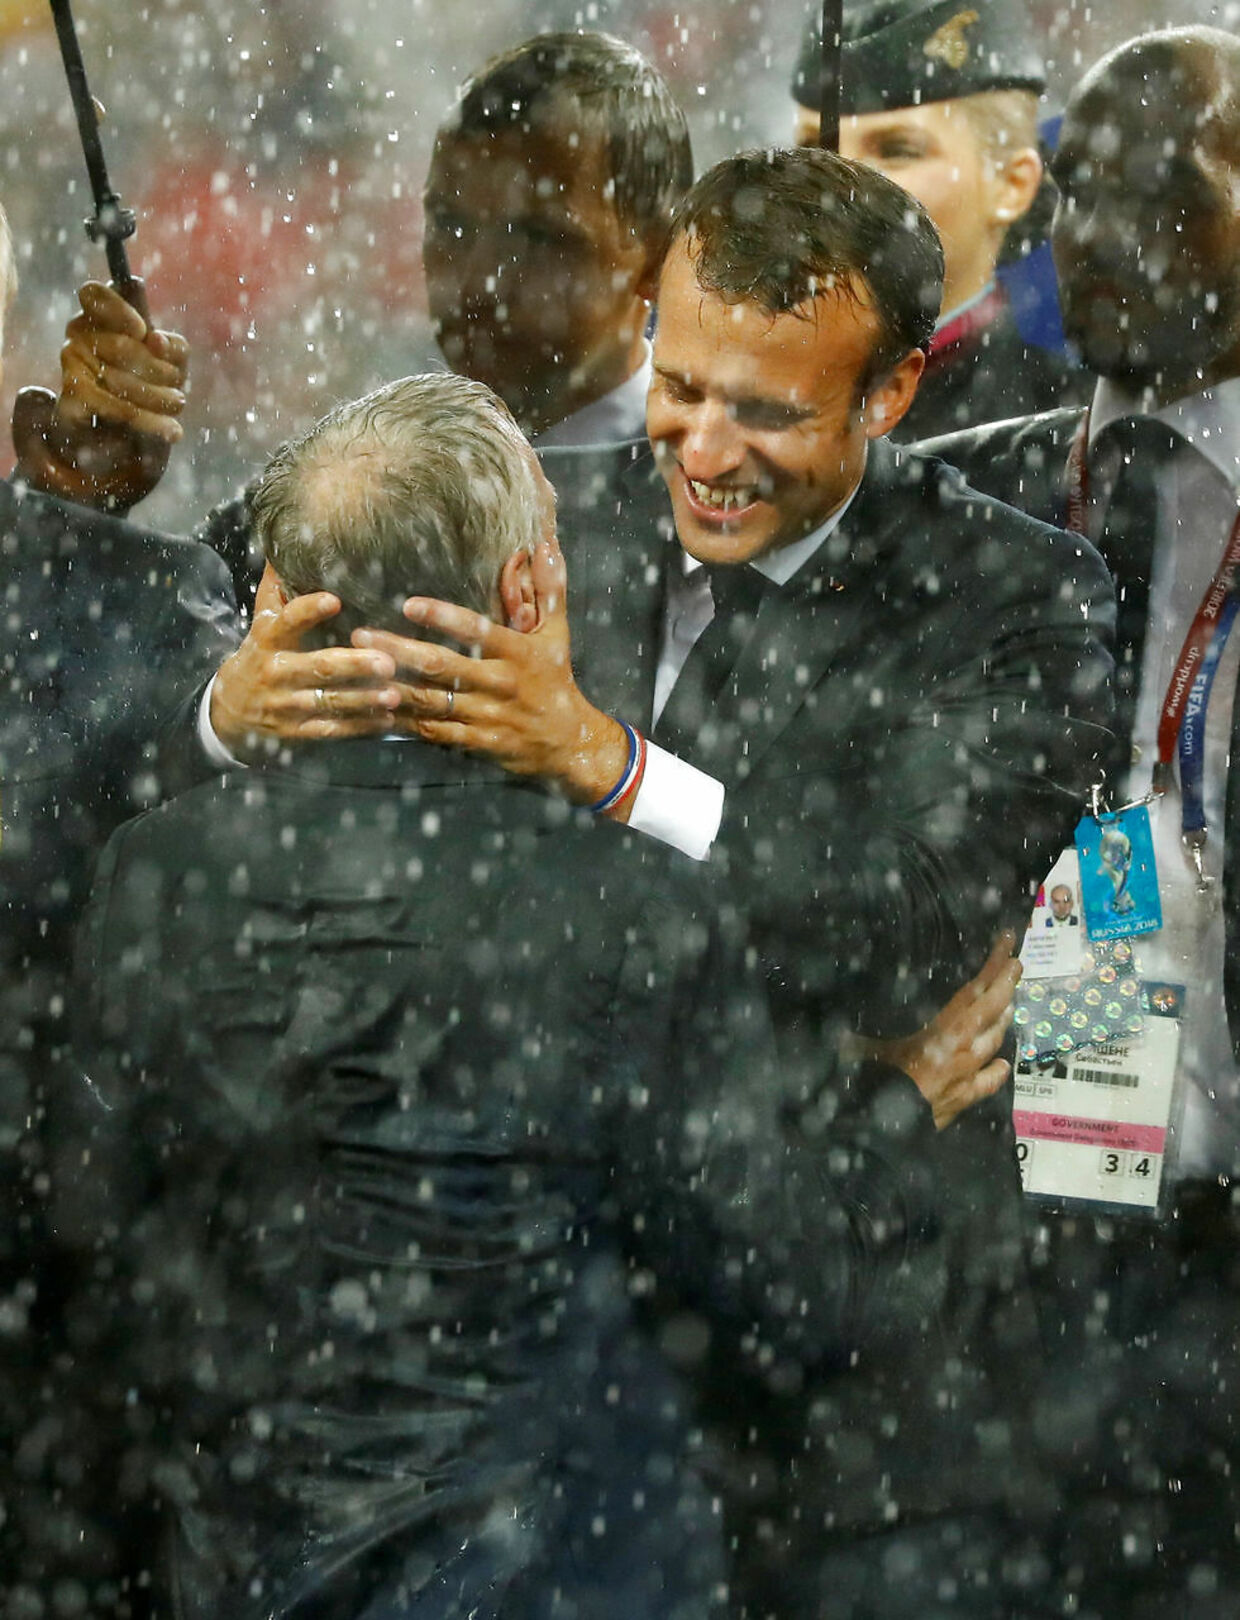 Soccer Football - World Cup - Final - France v Croatia - Luzhniki Stadium, Moscow, Russia - July 15, 2018 France coach Didier Deschamps celebrates with President of France Emmanuel Macron after winning the World Cup REUTERS/Kai Pfaffenbach